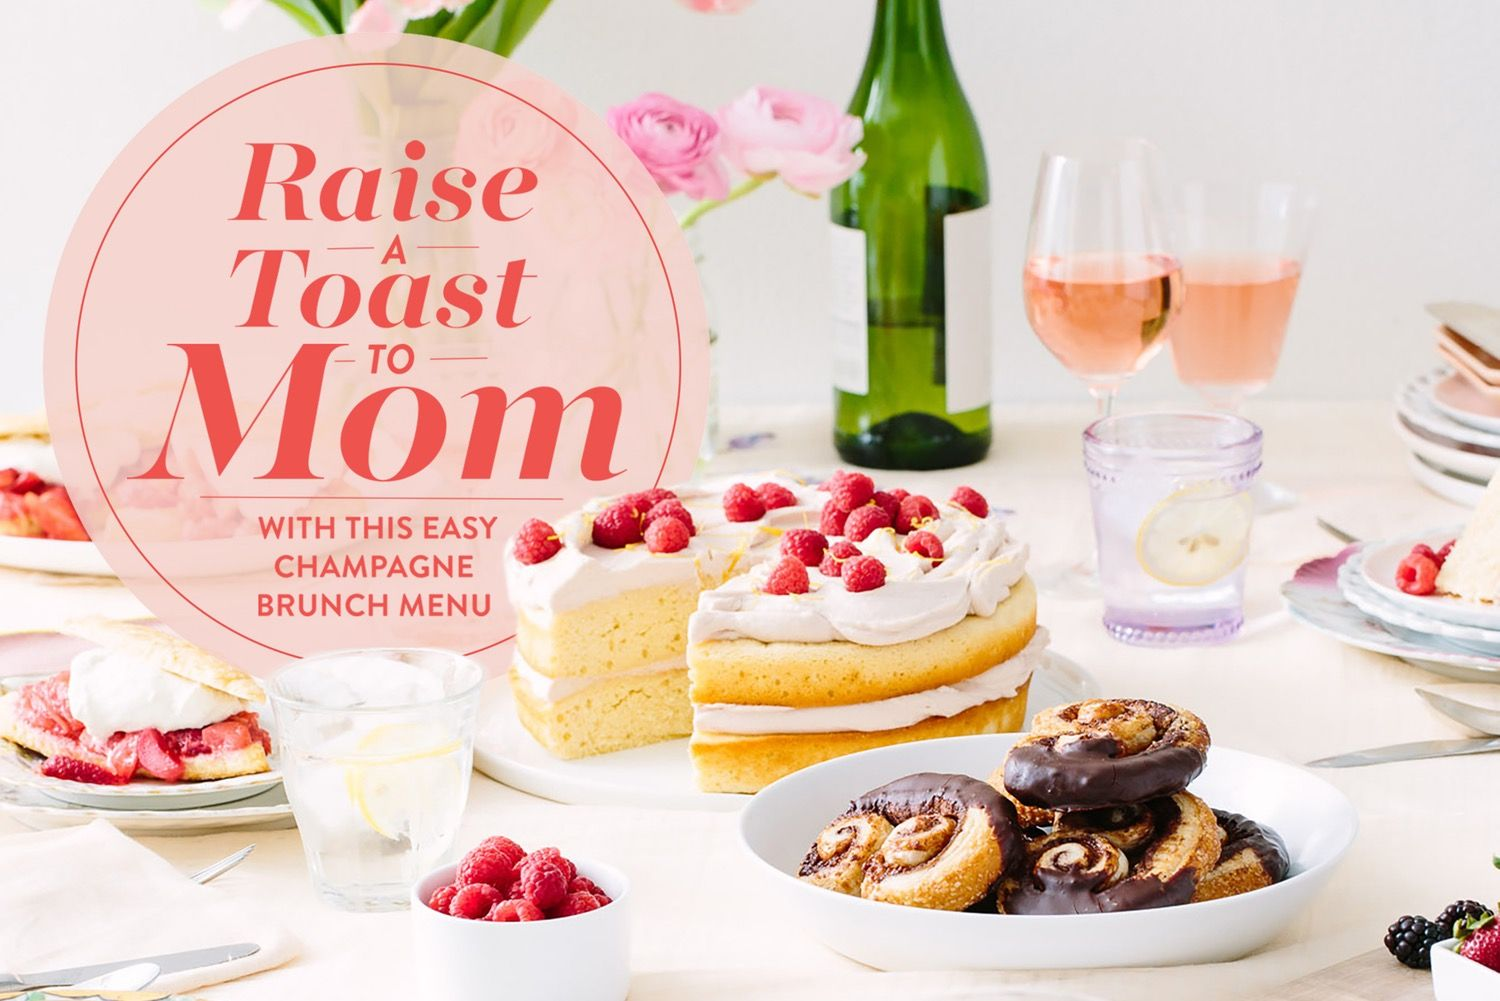 Raise a Toast to #Mom with This Easy Champagne Brunch #Menu http://www.thekitchn.com/raise-a-toast-to-mom-with-this-easy-champagne-brunch-menu-243918?utm_campaign=crowdfire&utm_content=crowdfire&utm_medium=social&utm_source=pinterest